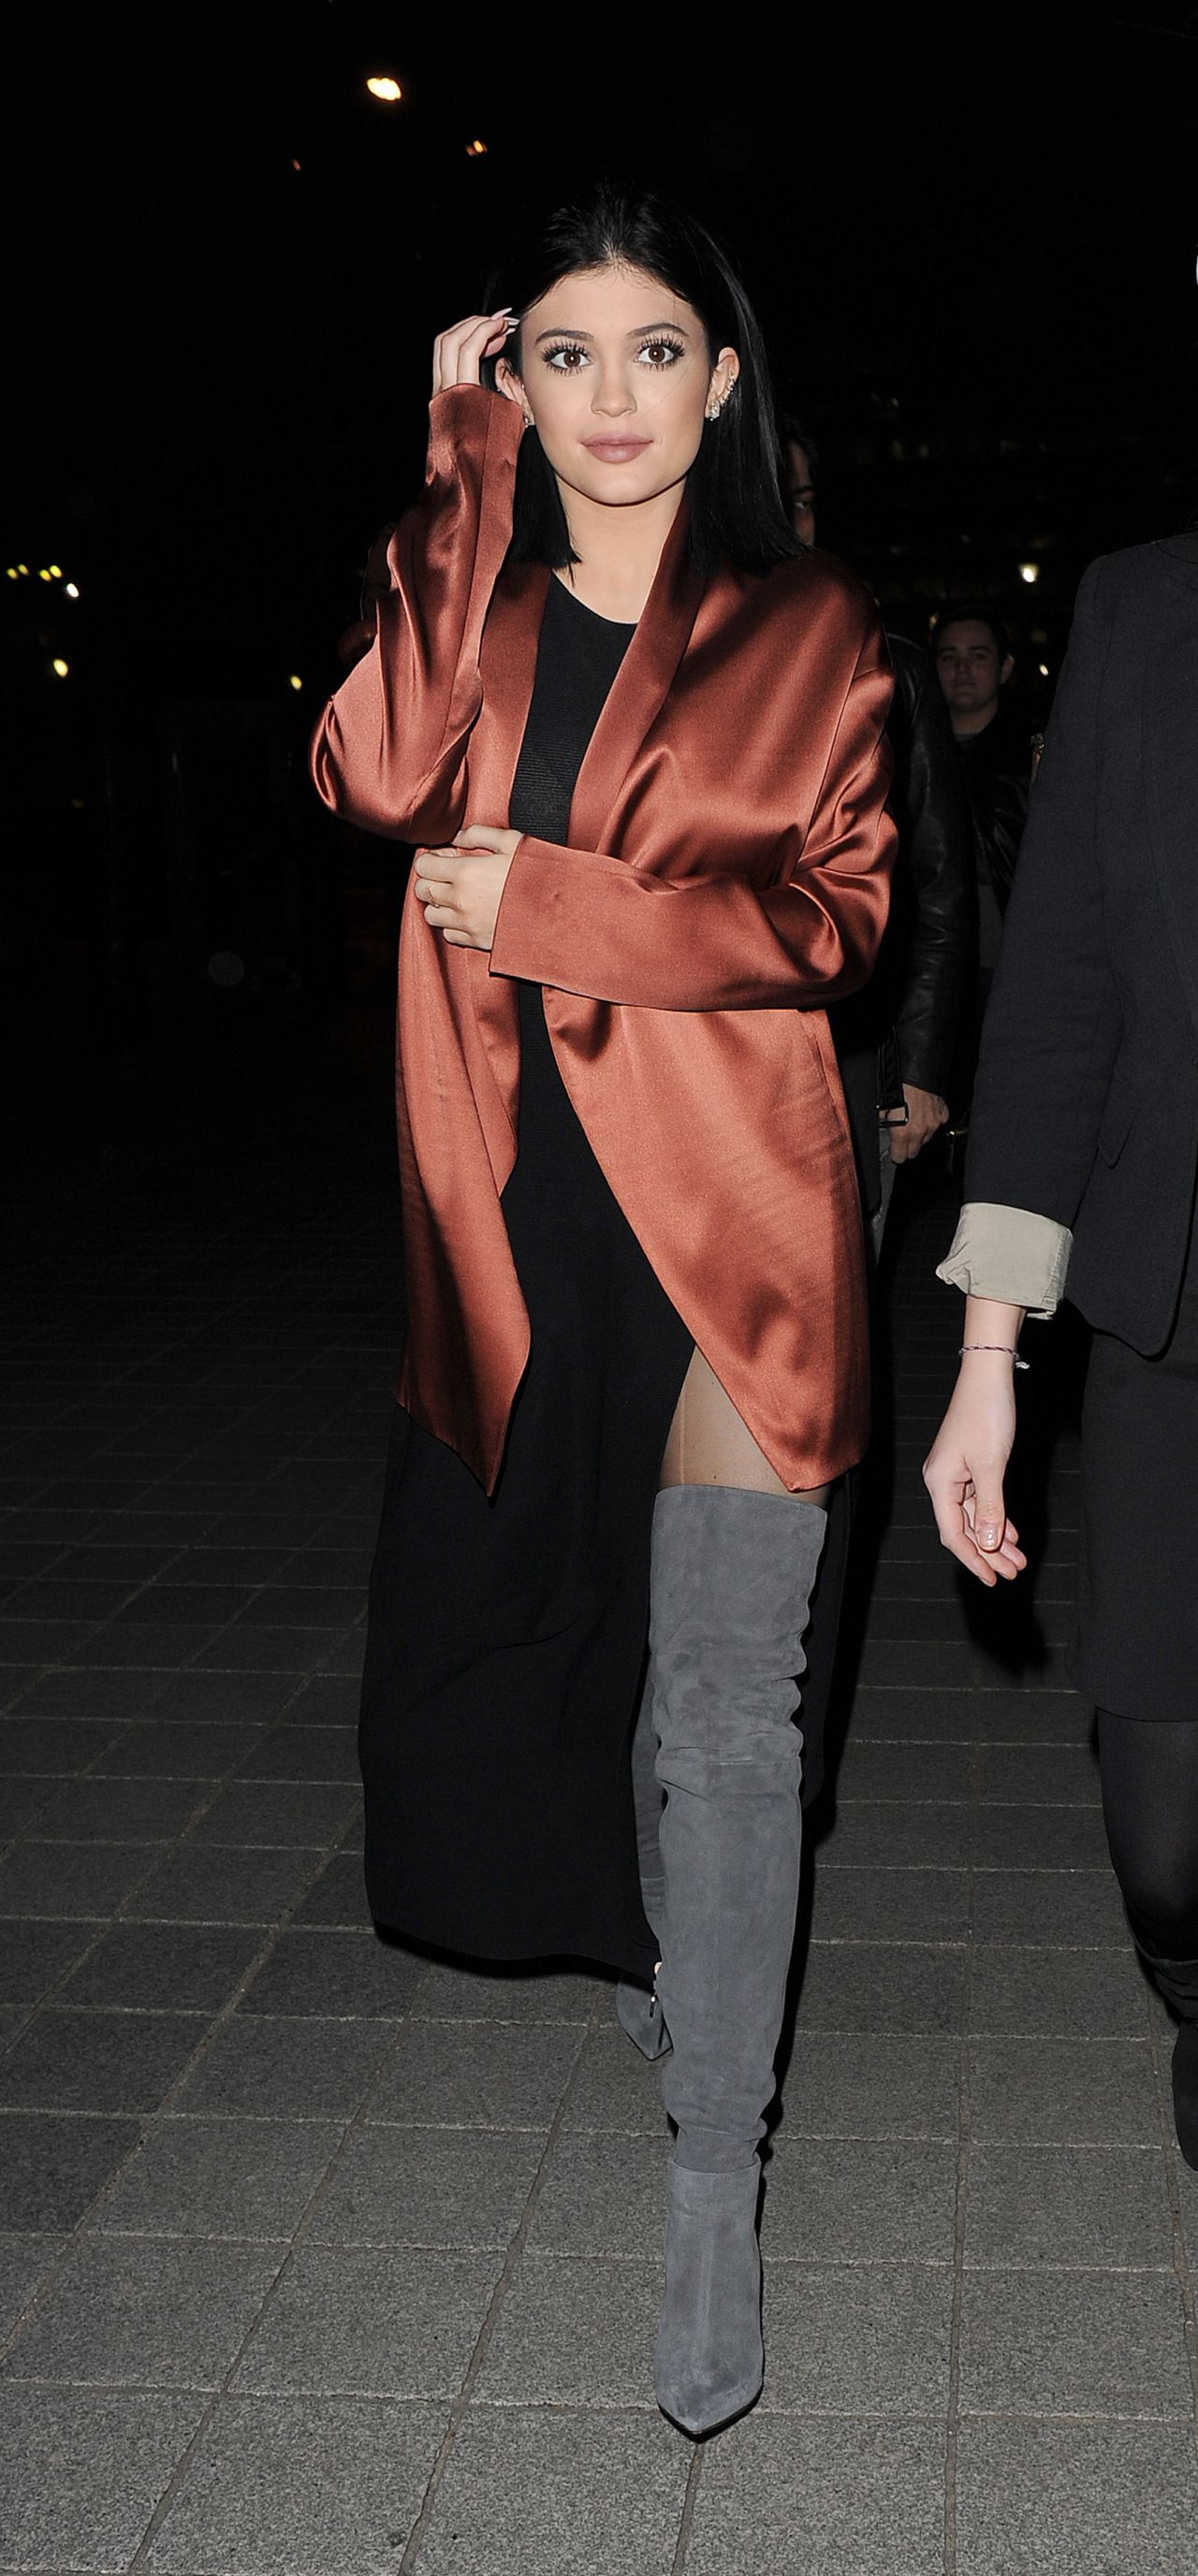 kylie-jenner-night-out-style-london-march-2015_1